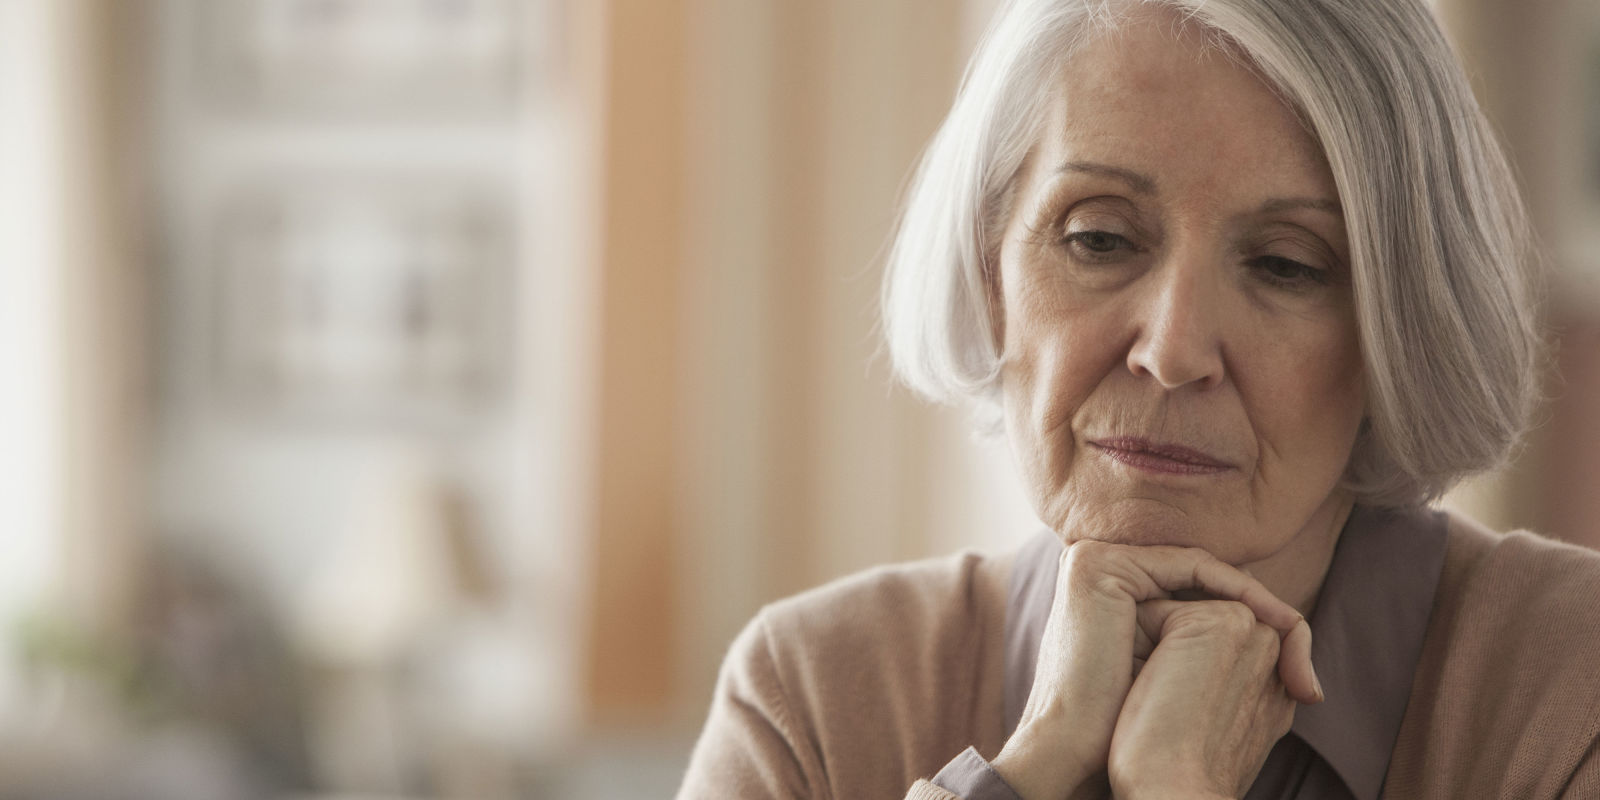 Warning Signs of Elderly Abuse